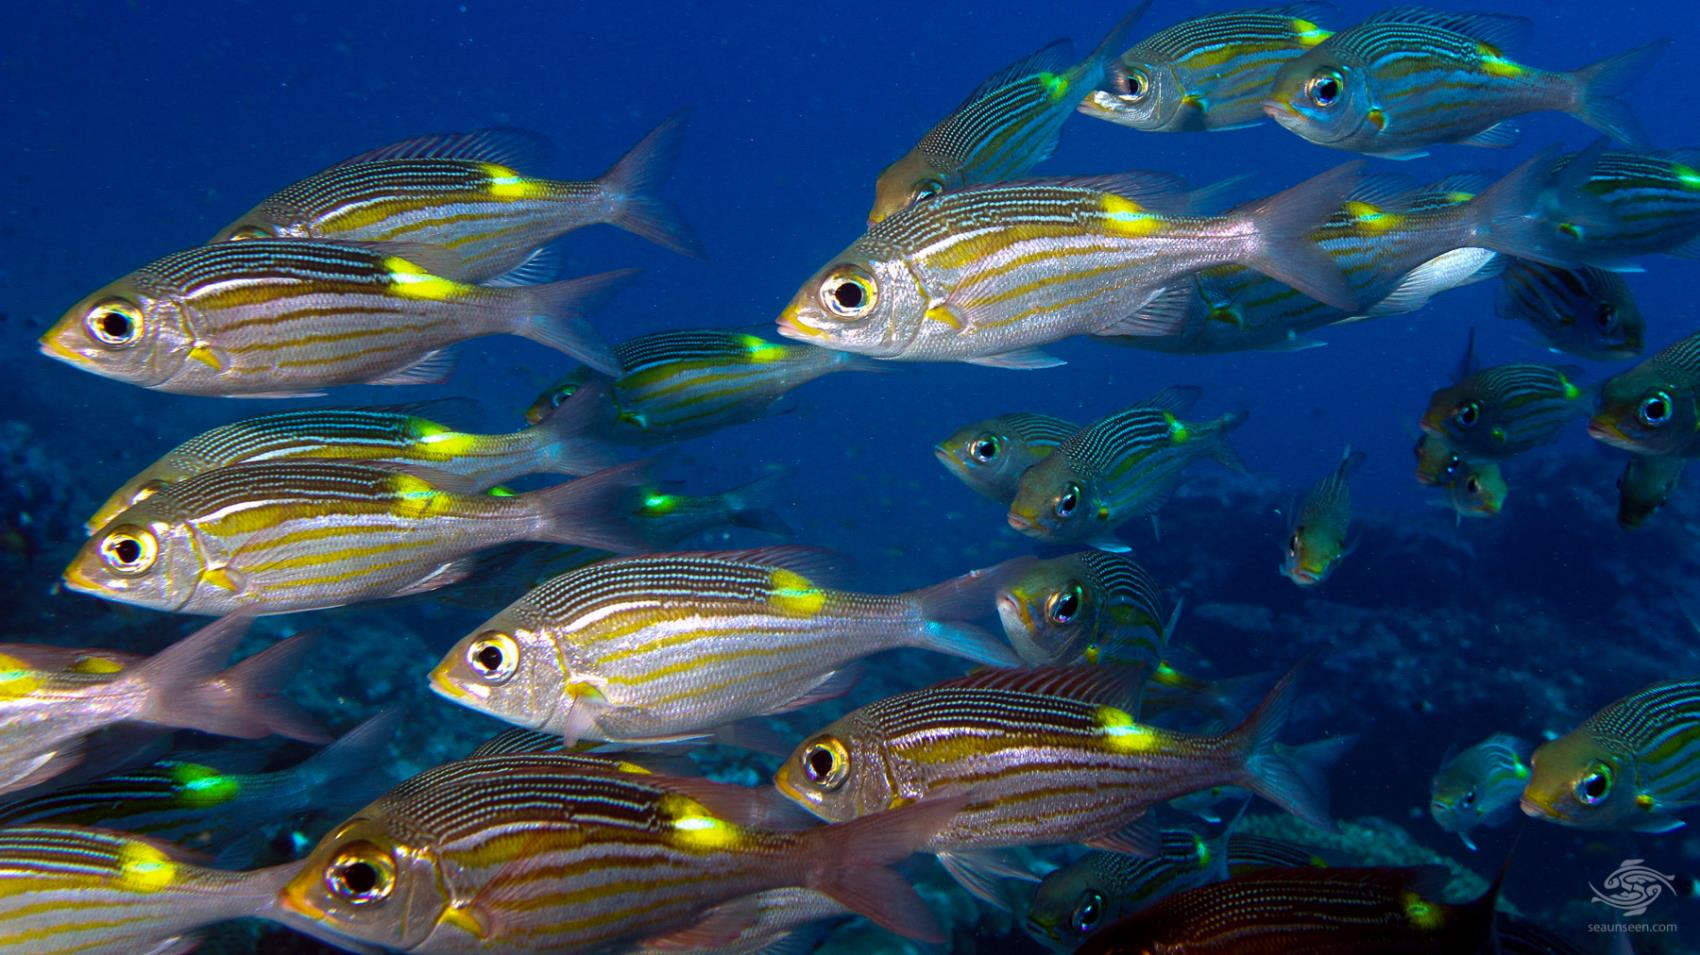 A shoal of Glowfish in the Mafia Island Marine Park diving Tanzania